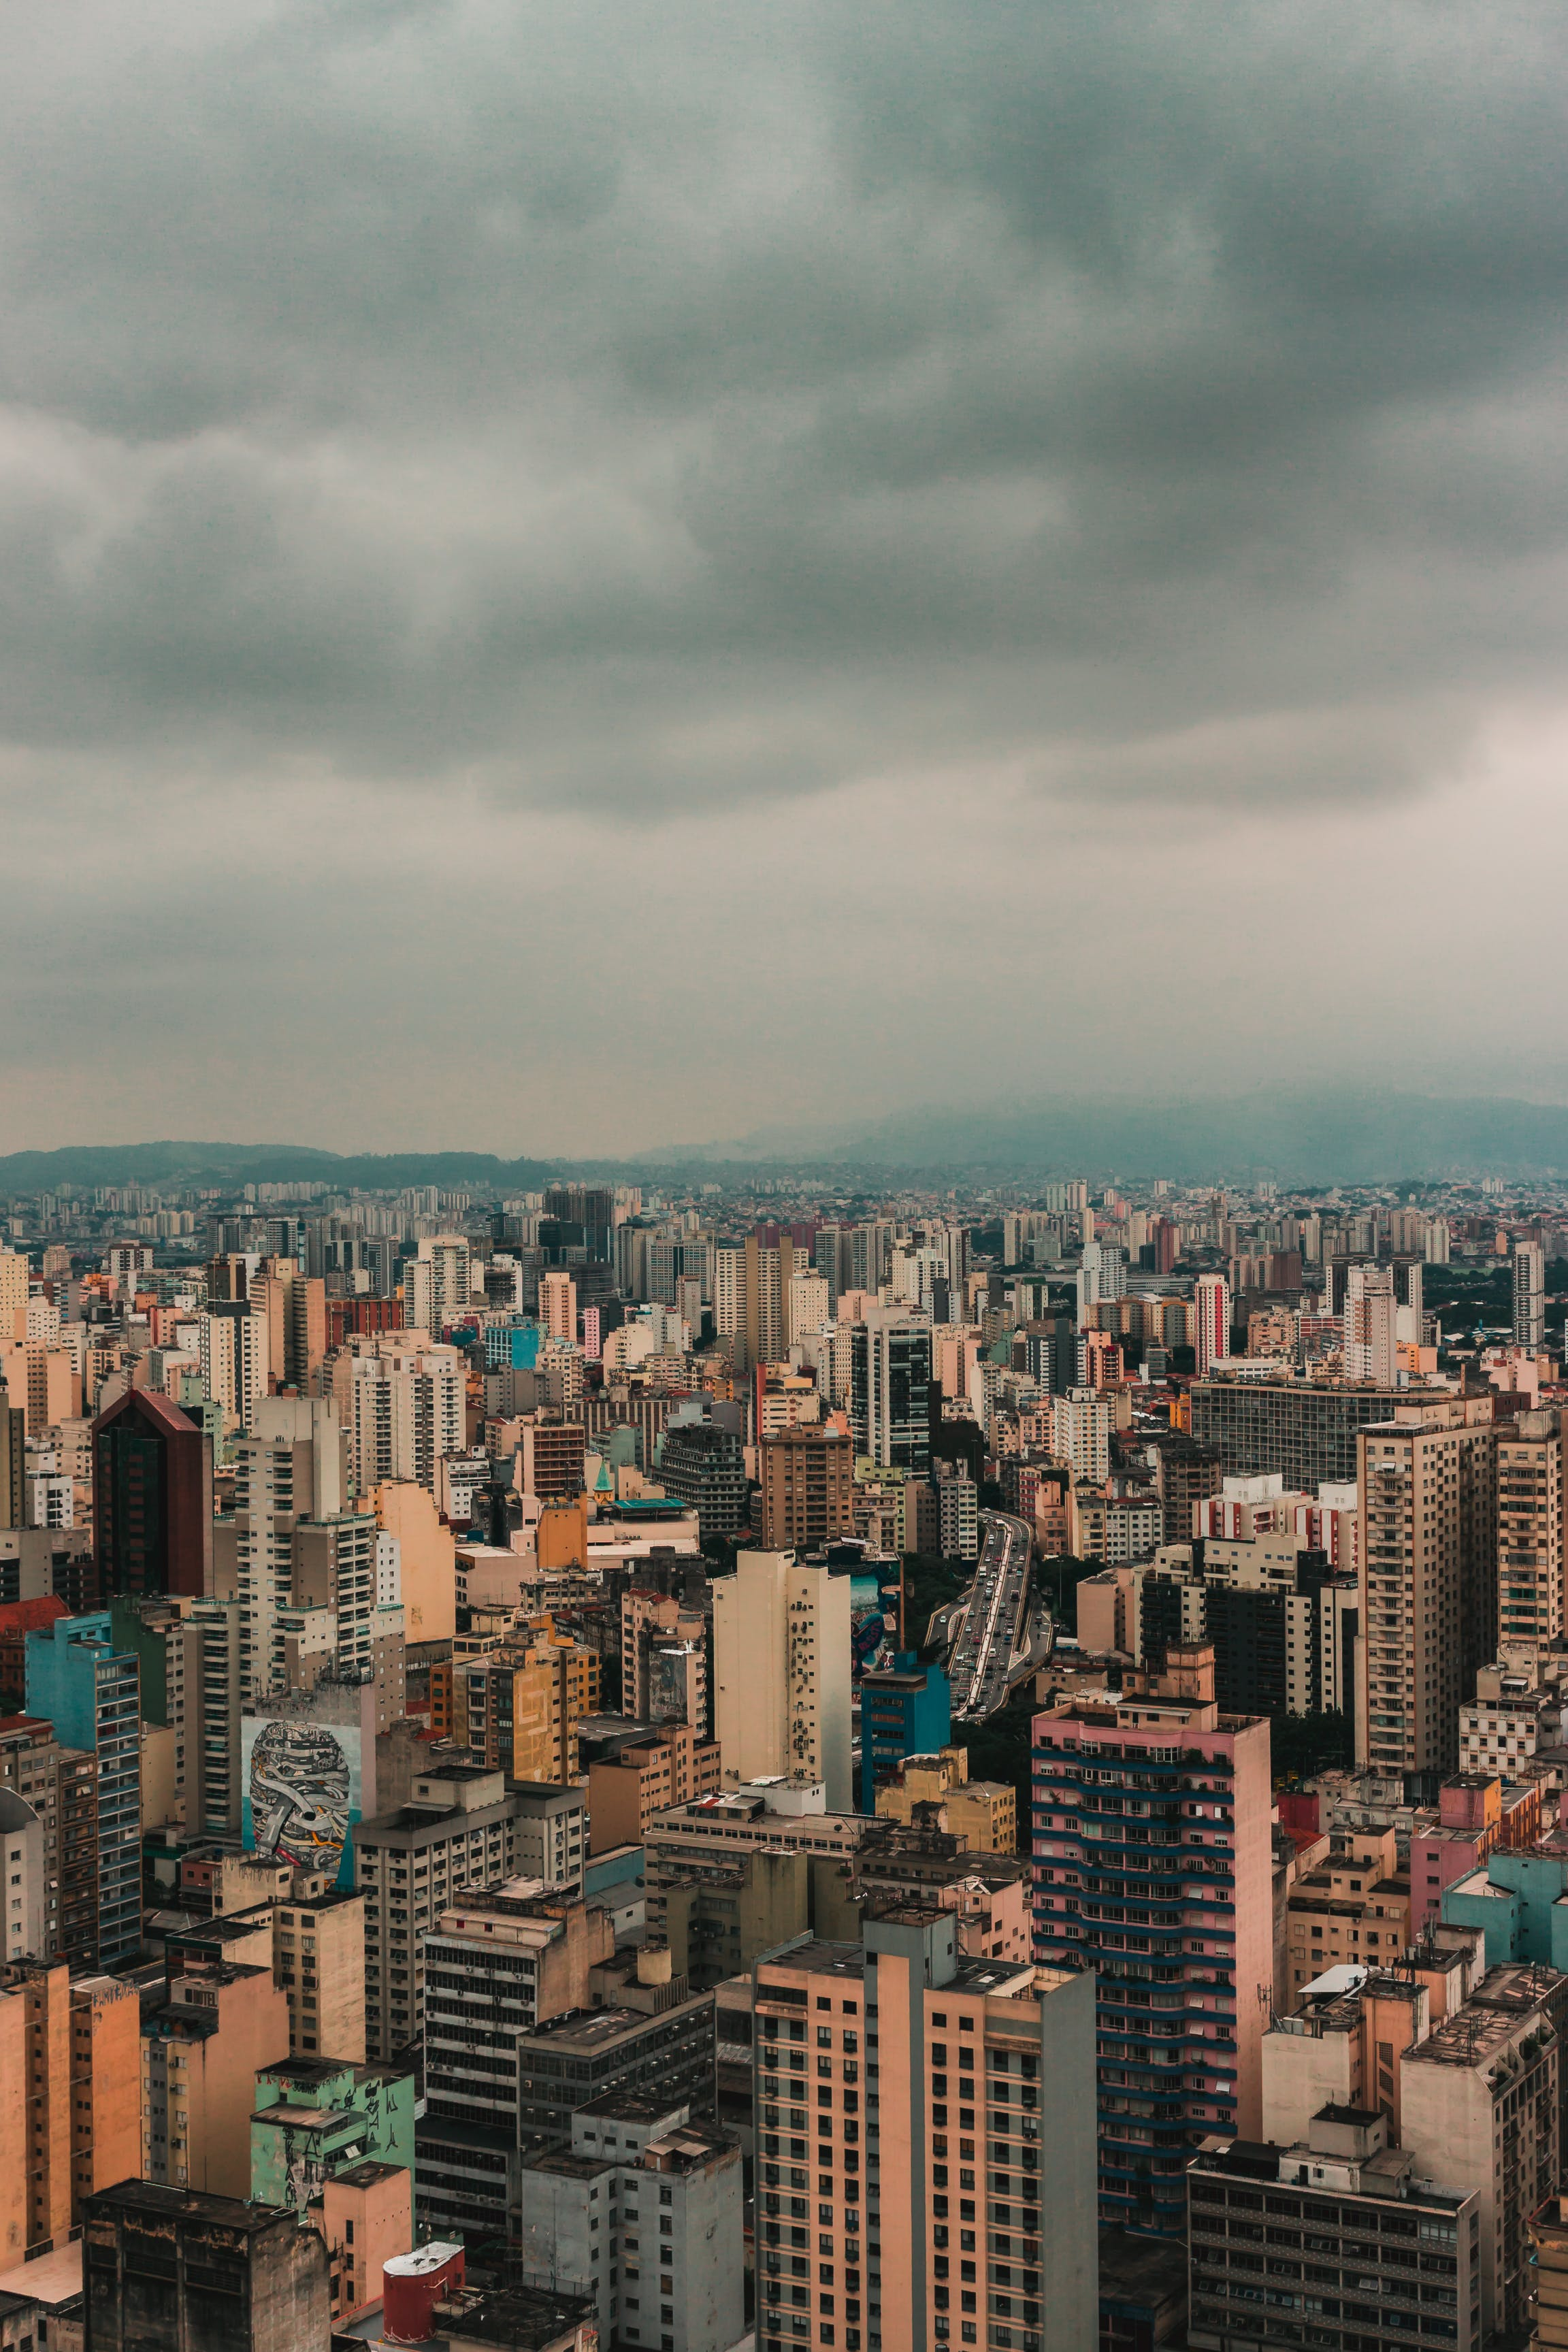 Aerial View Photo of Cityscape on a Gloomy Day